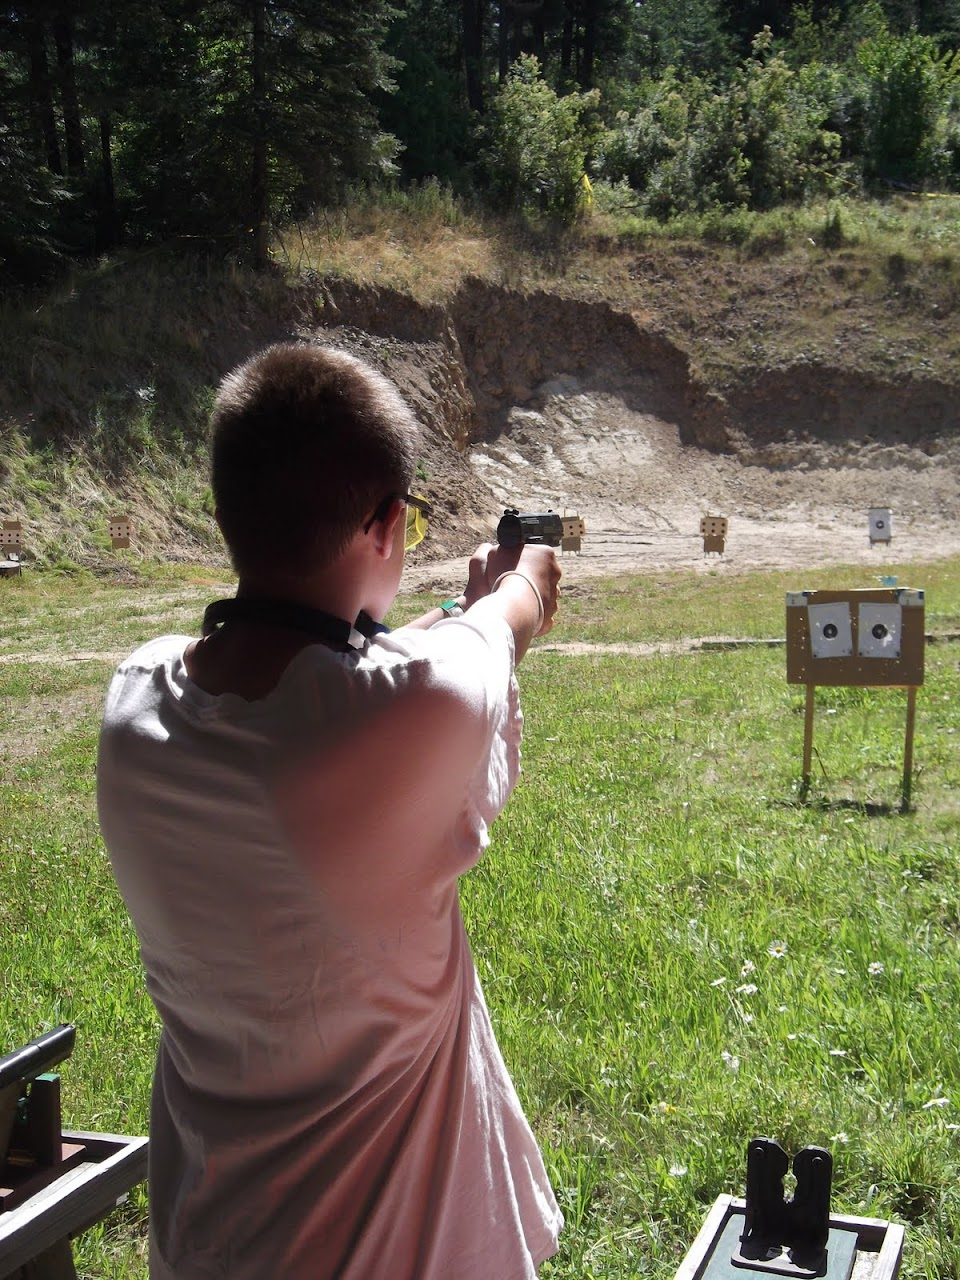 Matthew lining up with the Pistol